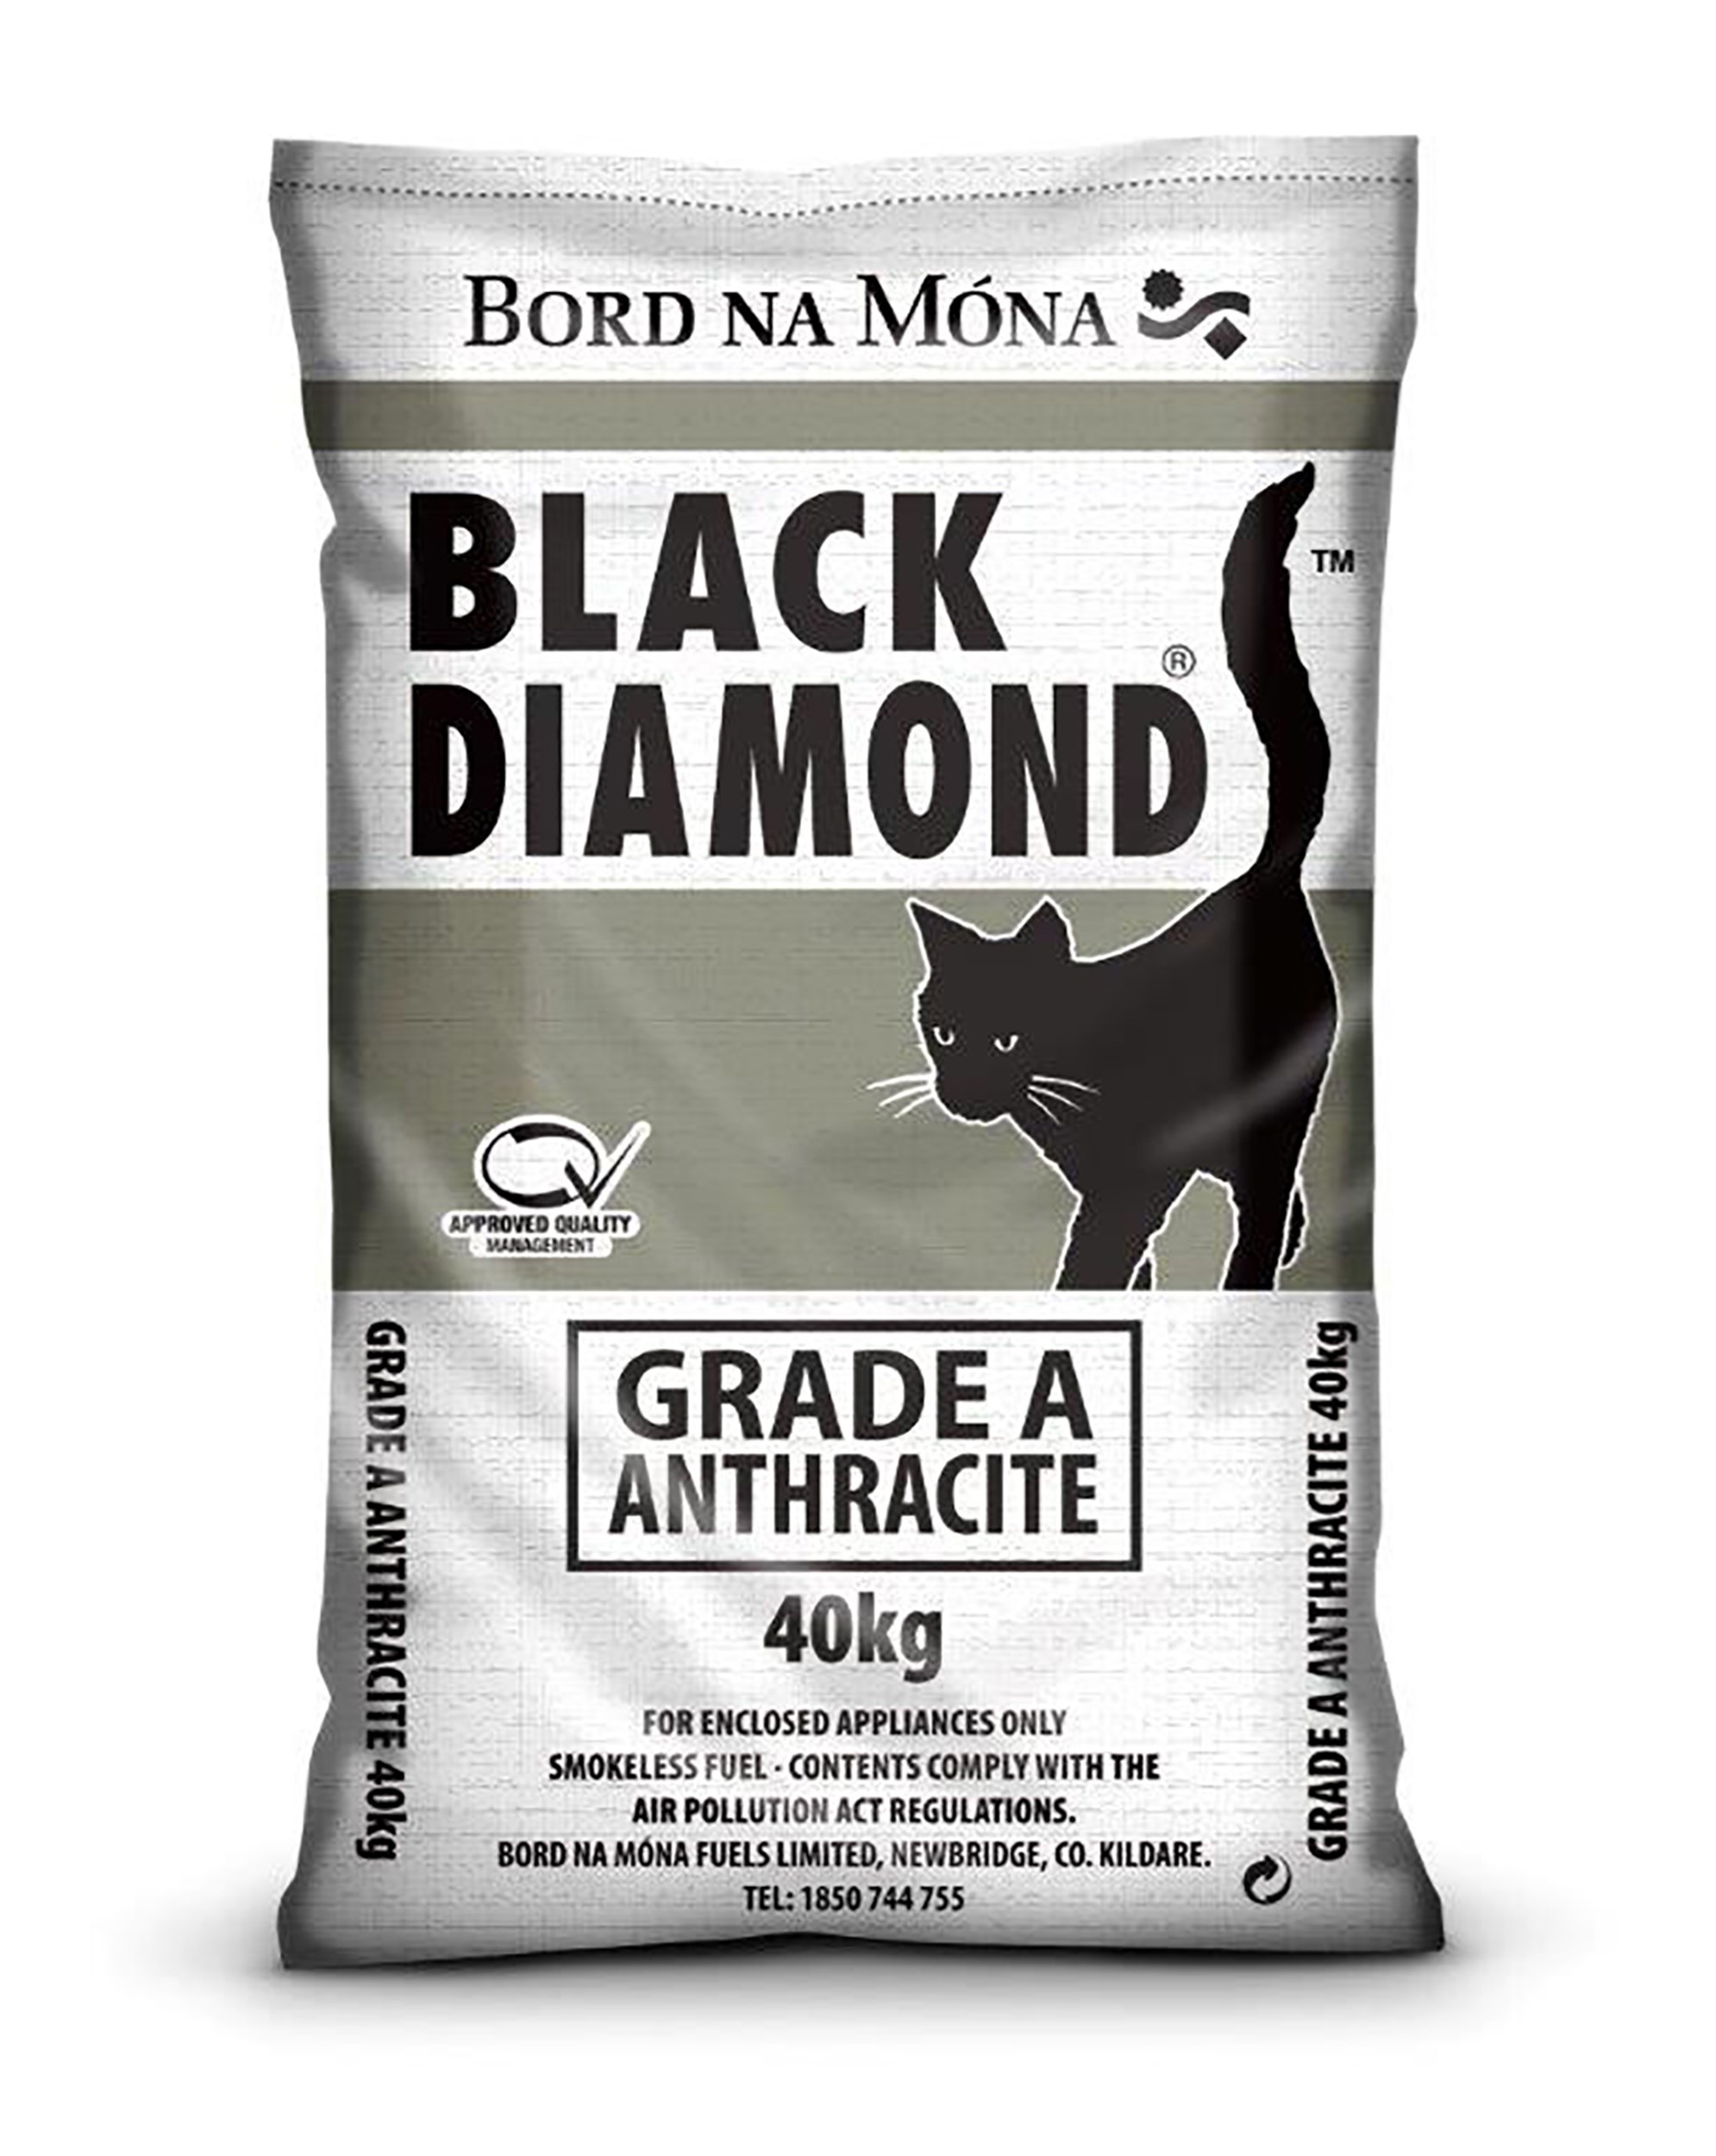 Bord na Móna Black Diamond Grade A Anthracite Coal - 40kg